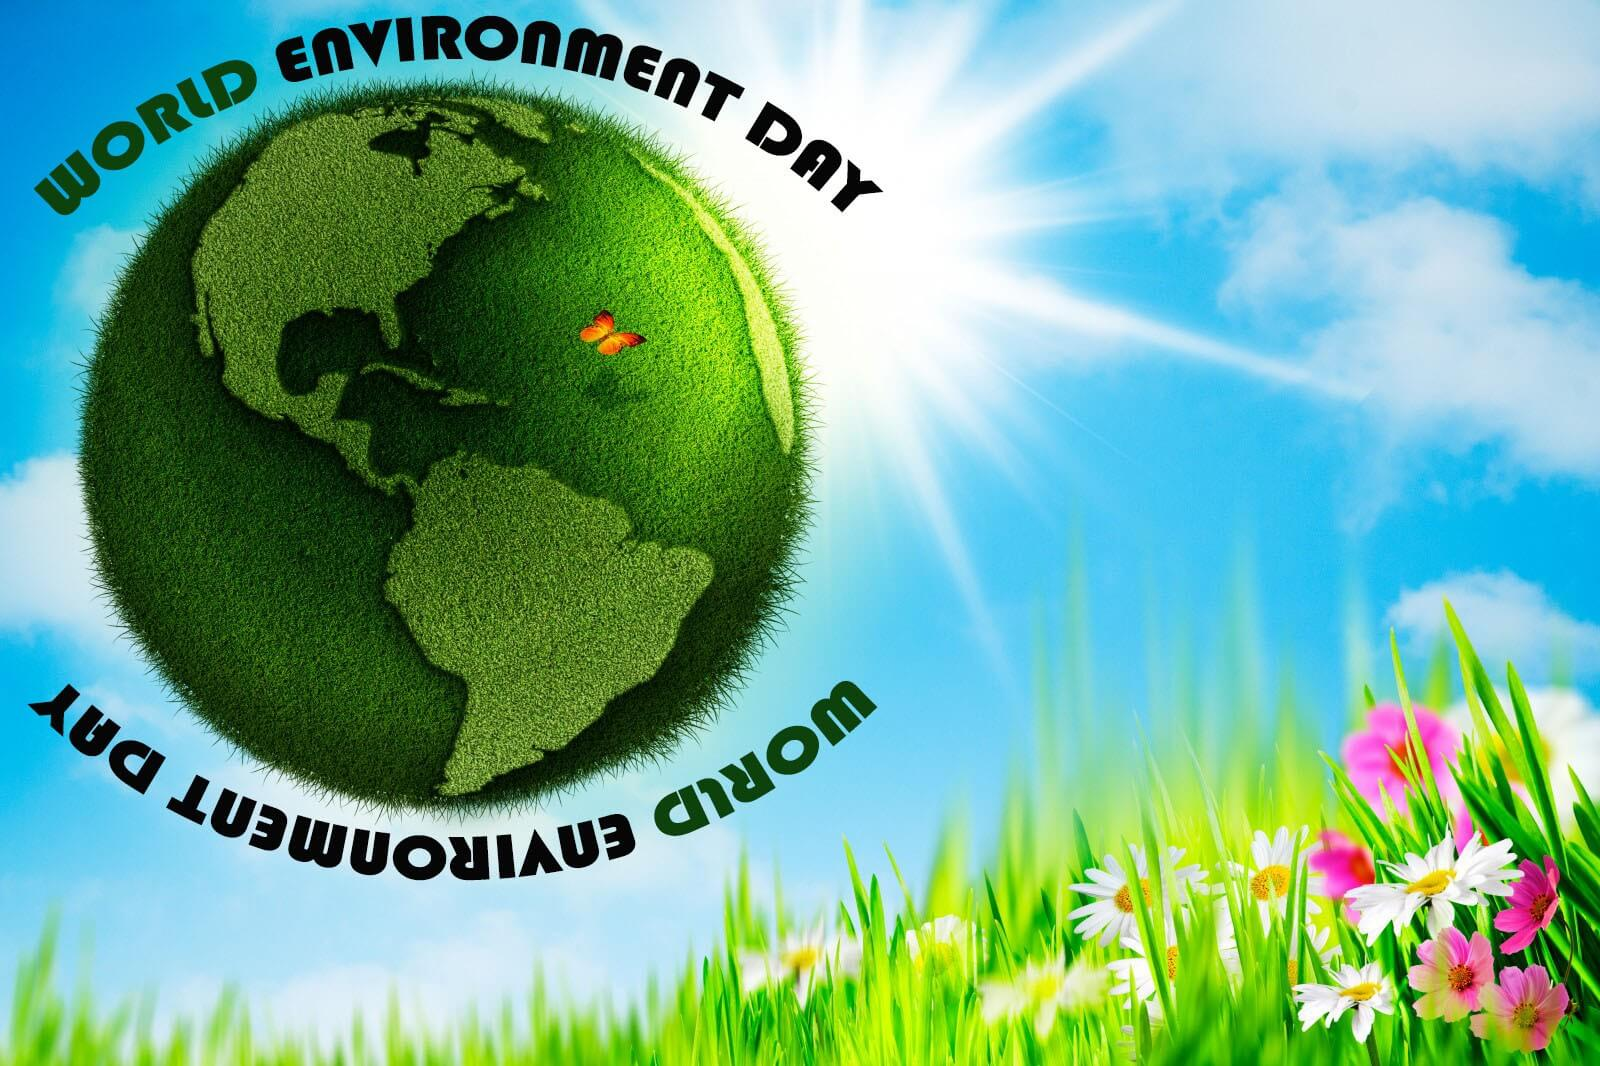 happy environment earth day 3dimage